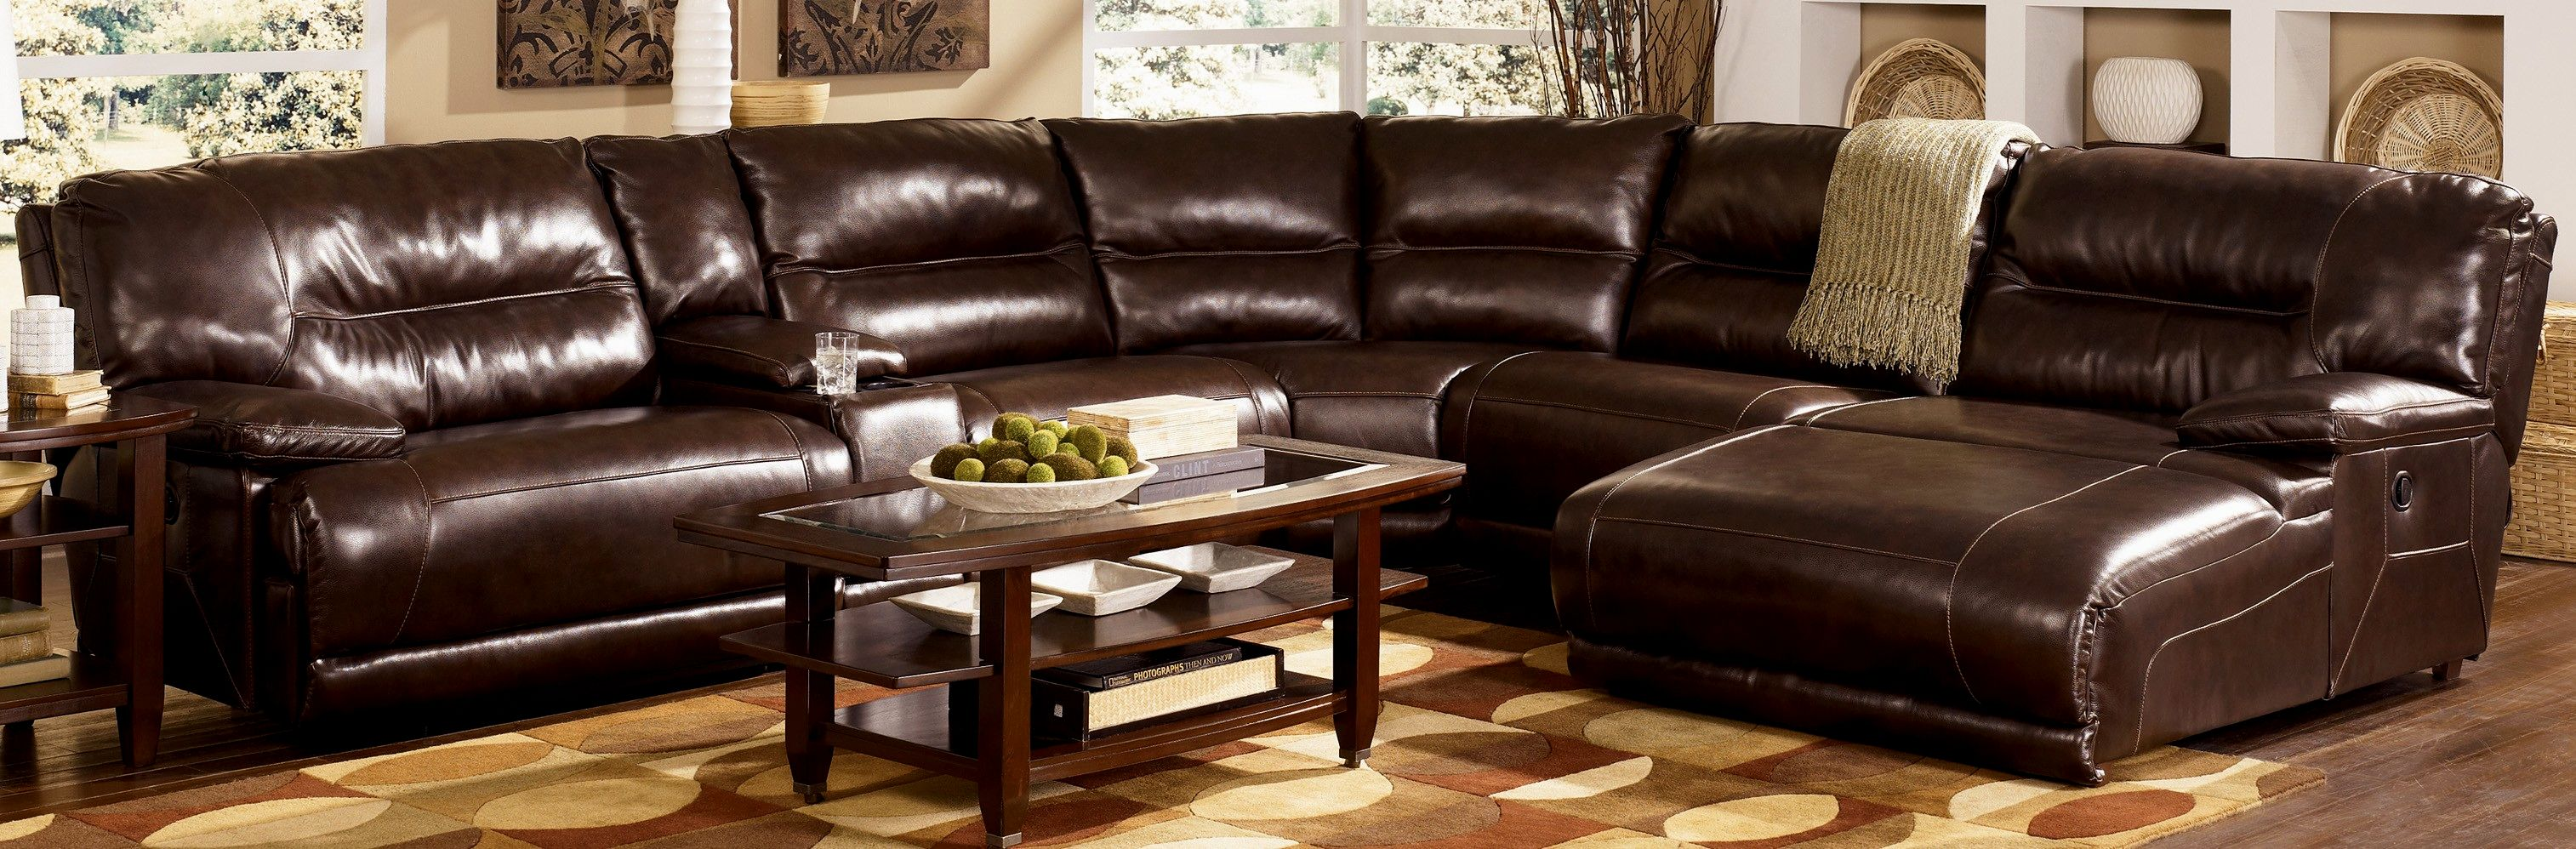 top best sectional sofas collection-New Best Sectional sofas Inspiration